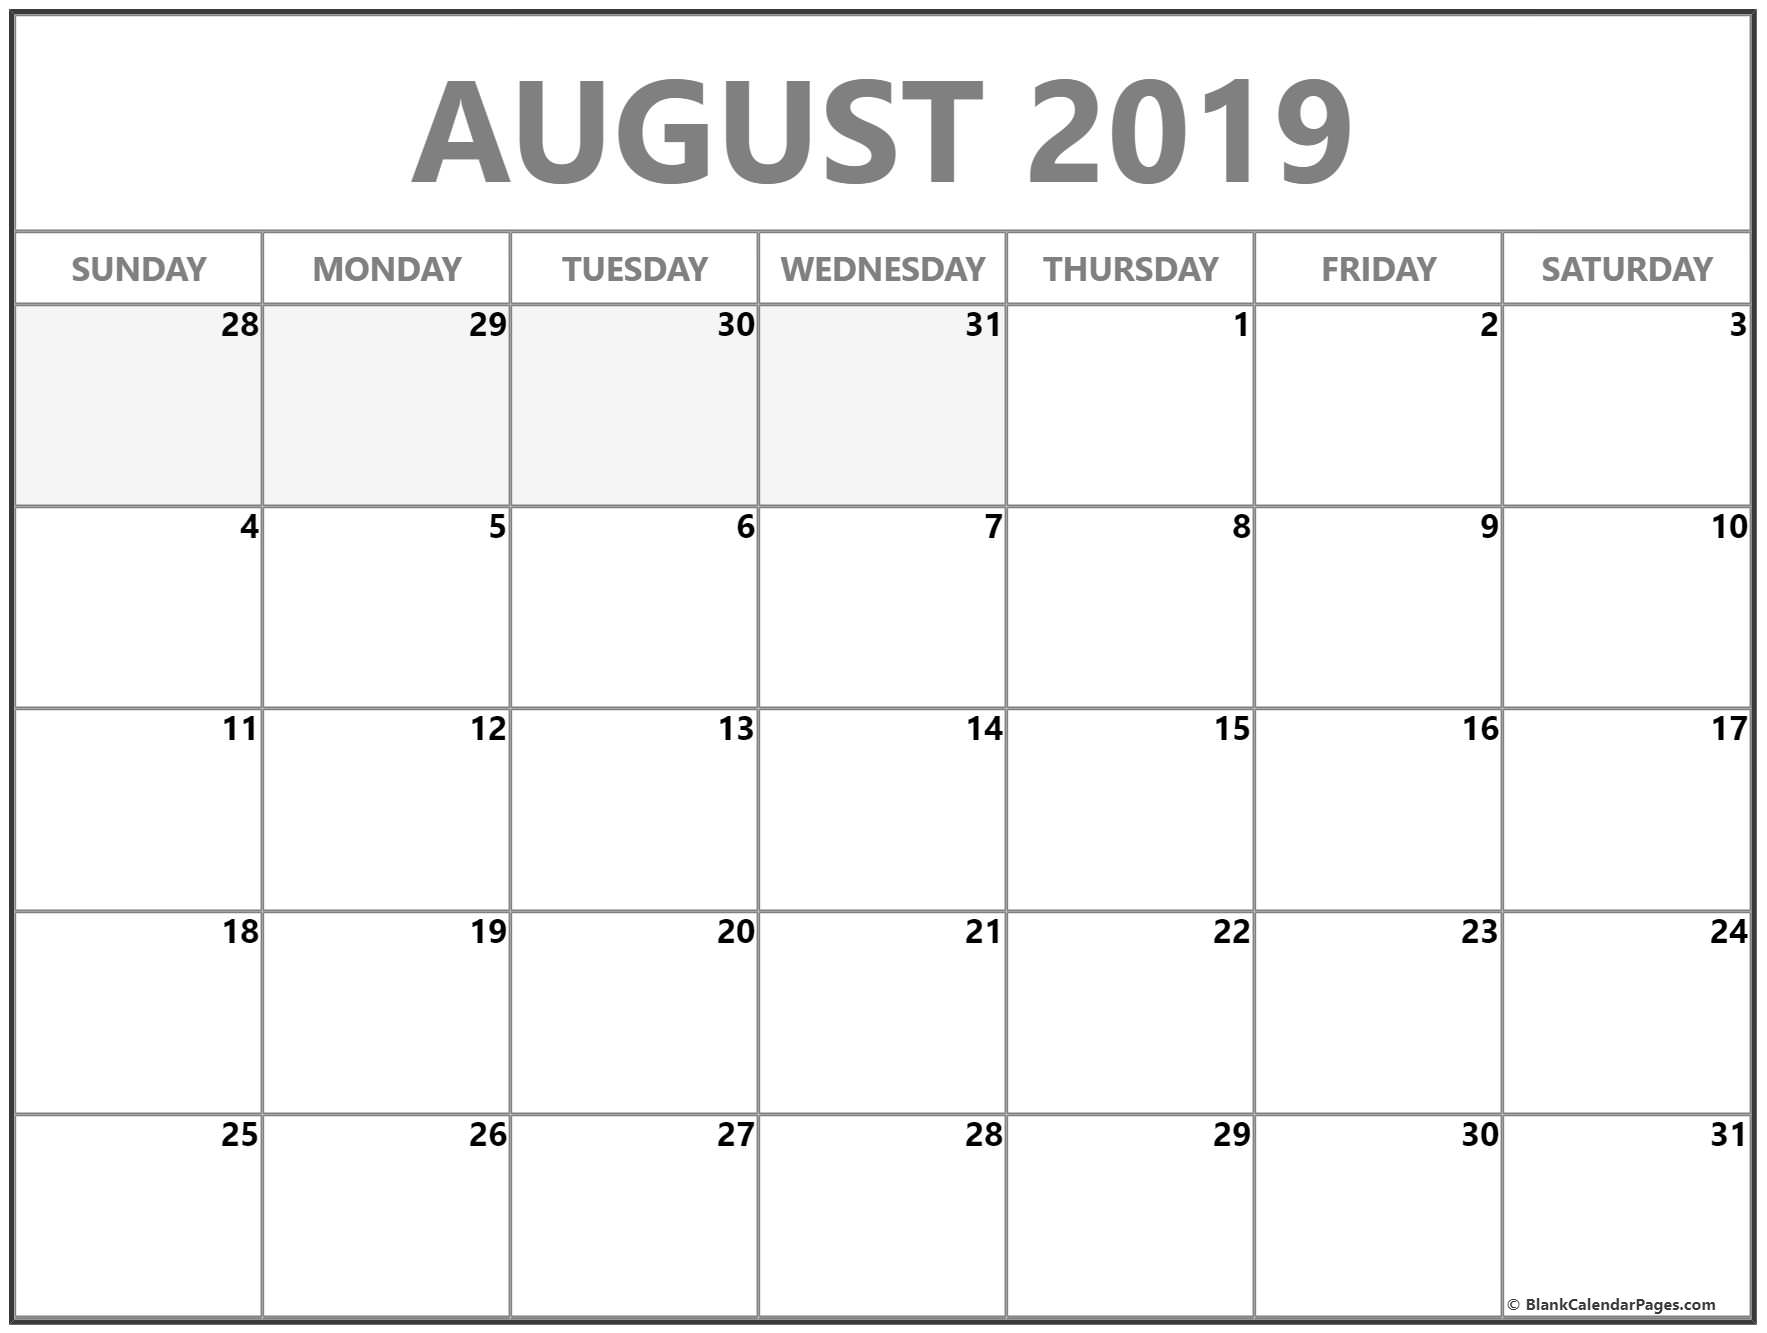 August 2019 Calendar | Free Printable Monthly Calendars throughout Blank August Colorful Calendar